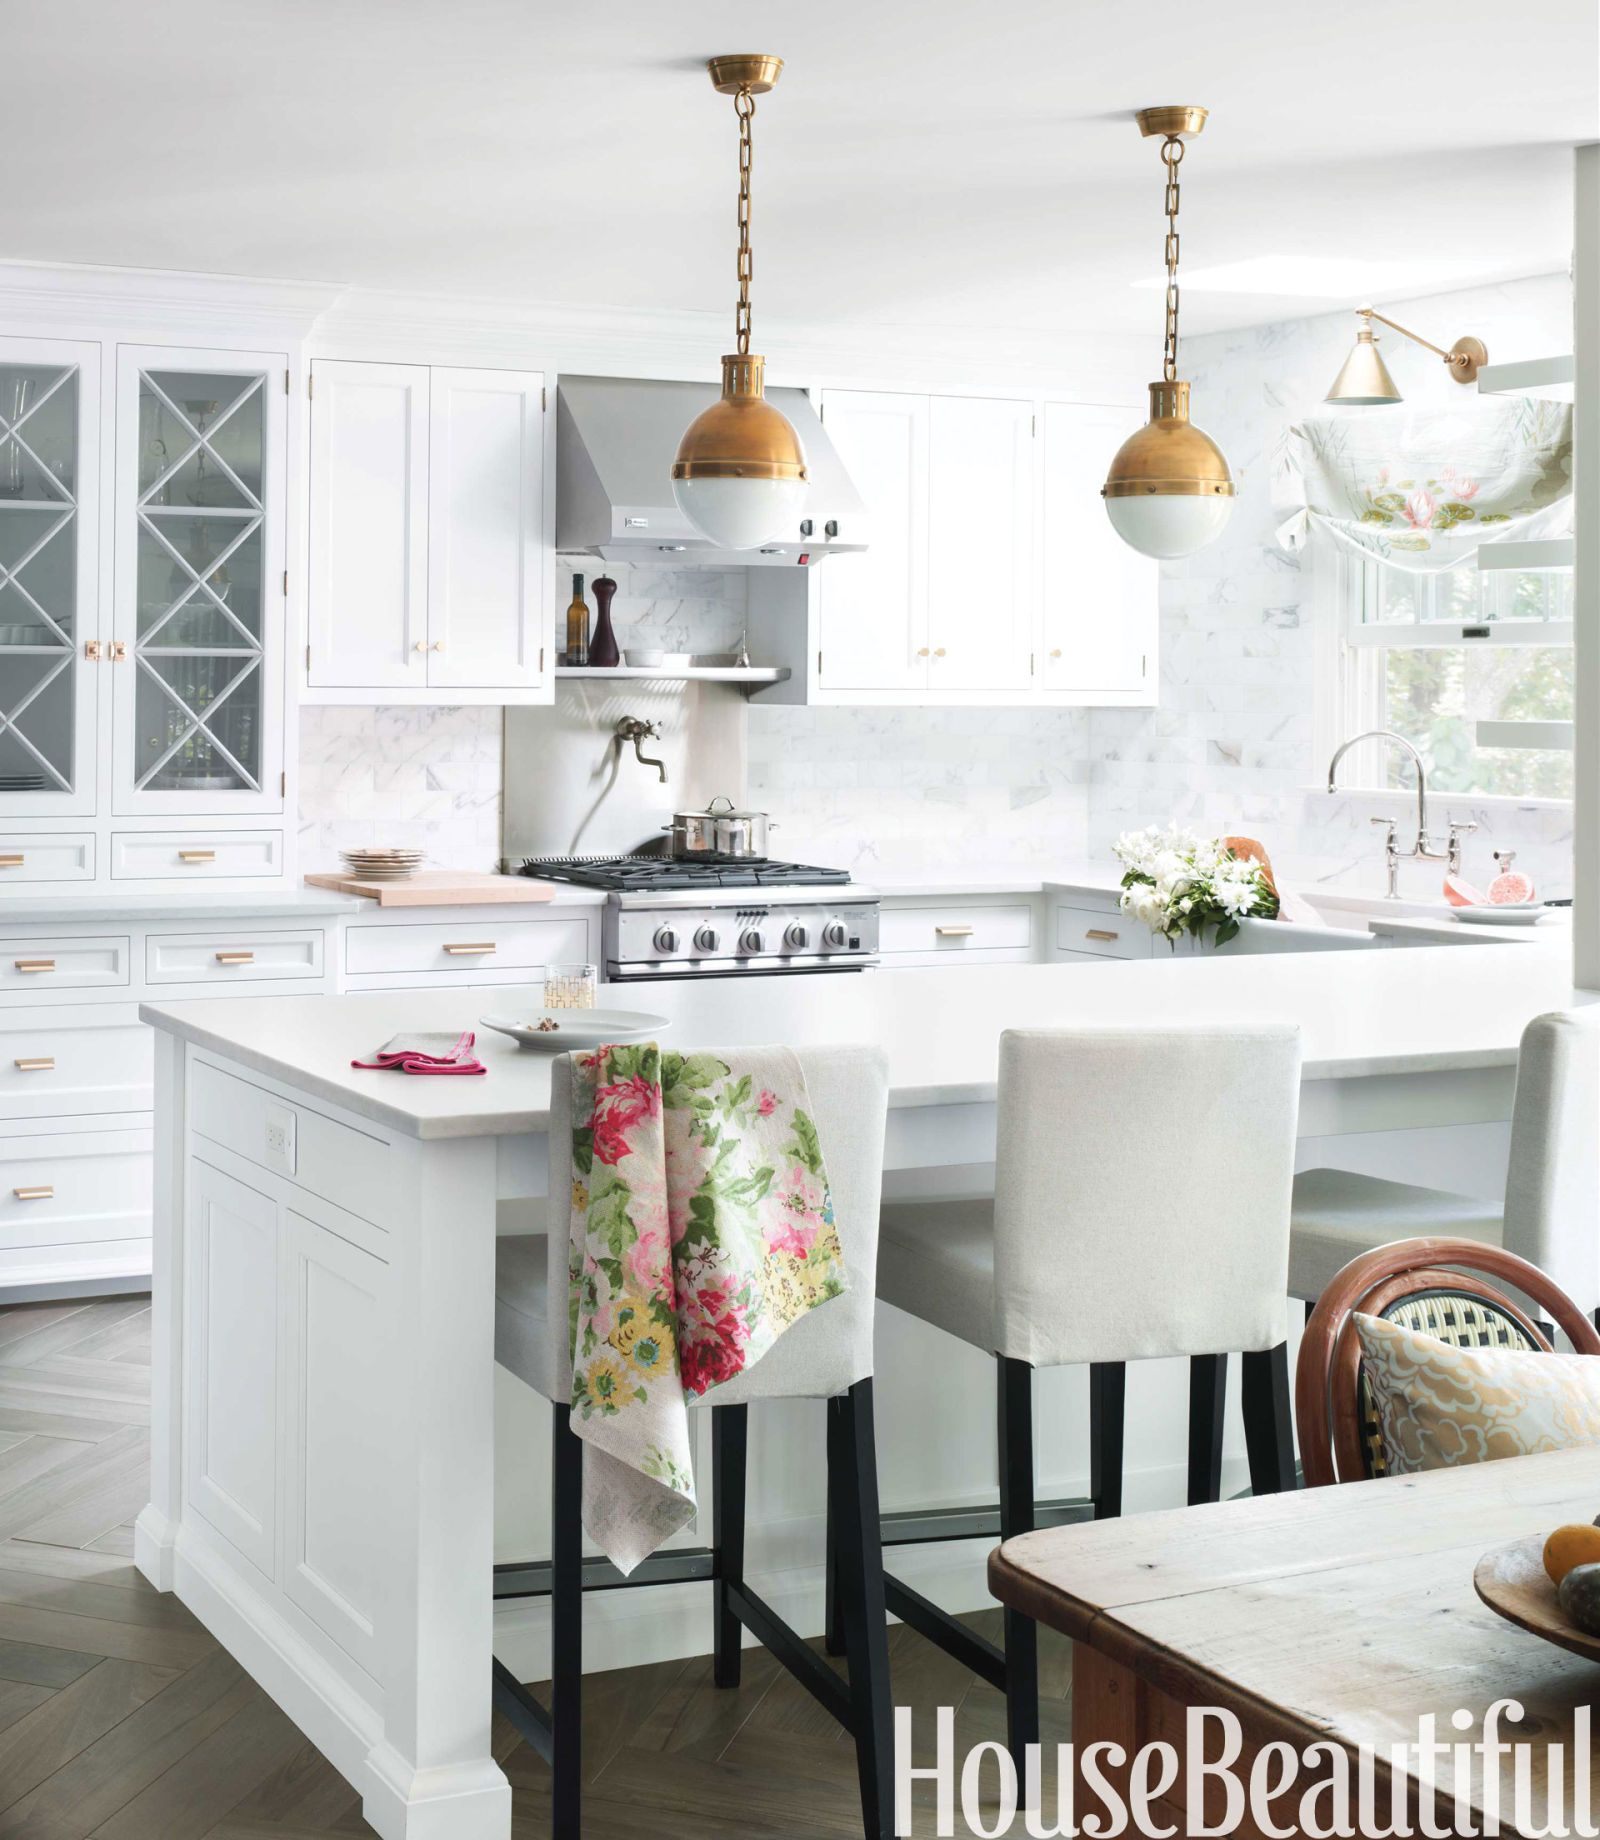 Top Pin of the Day: A Classic White Kitchen